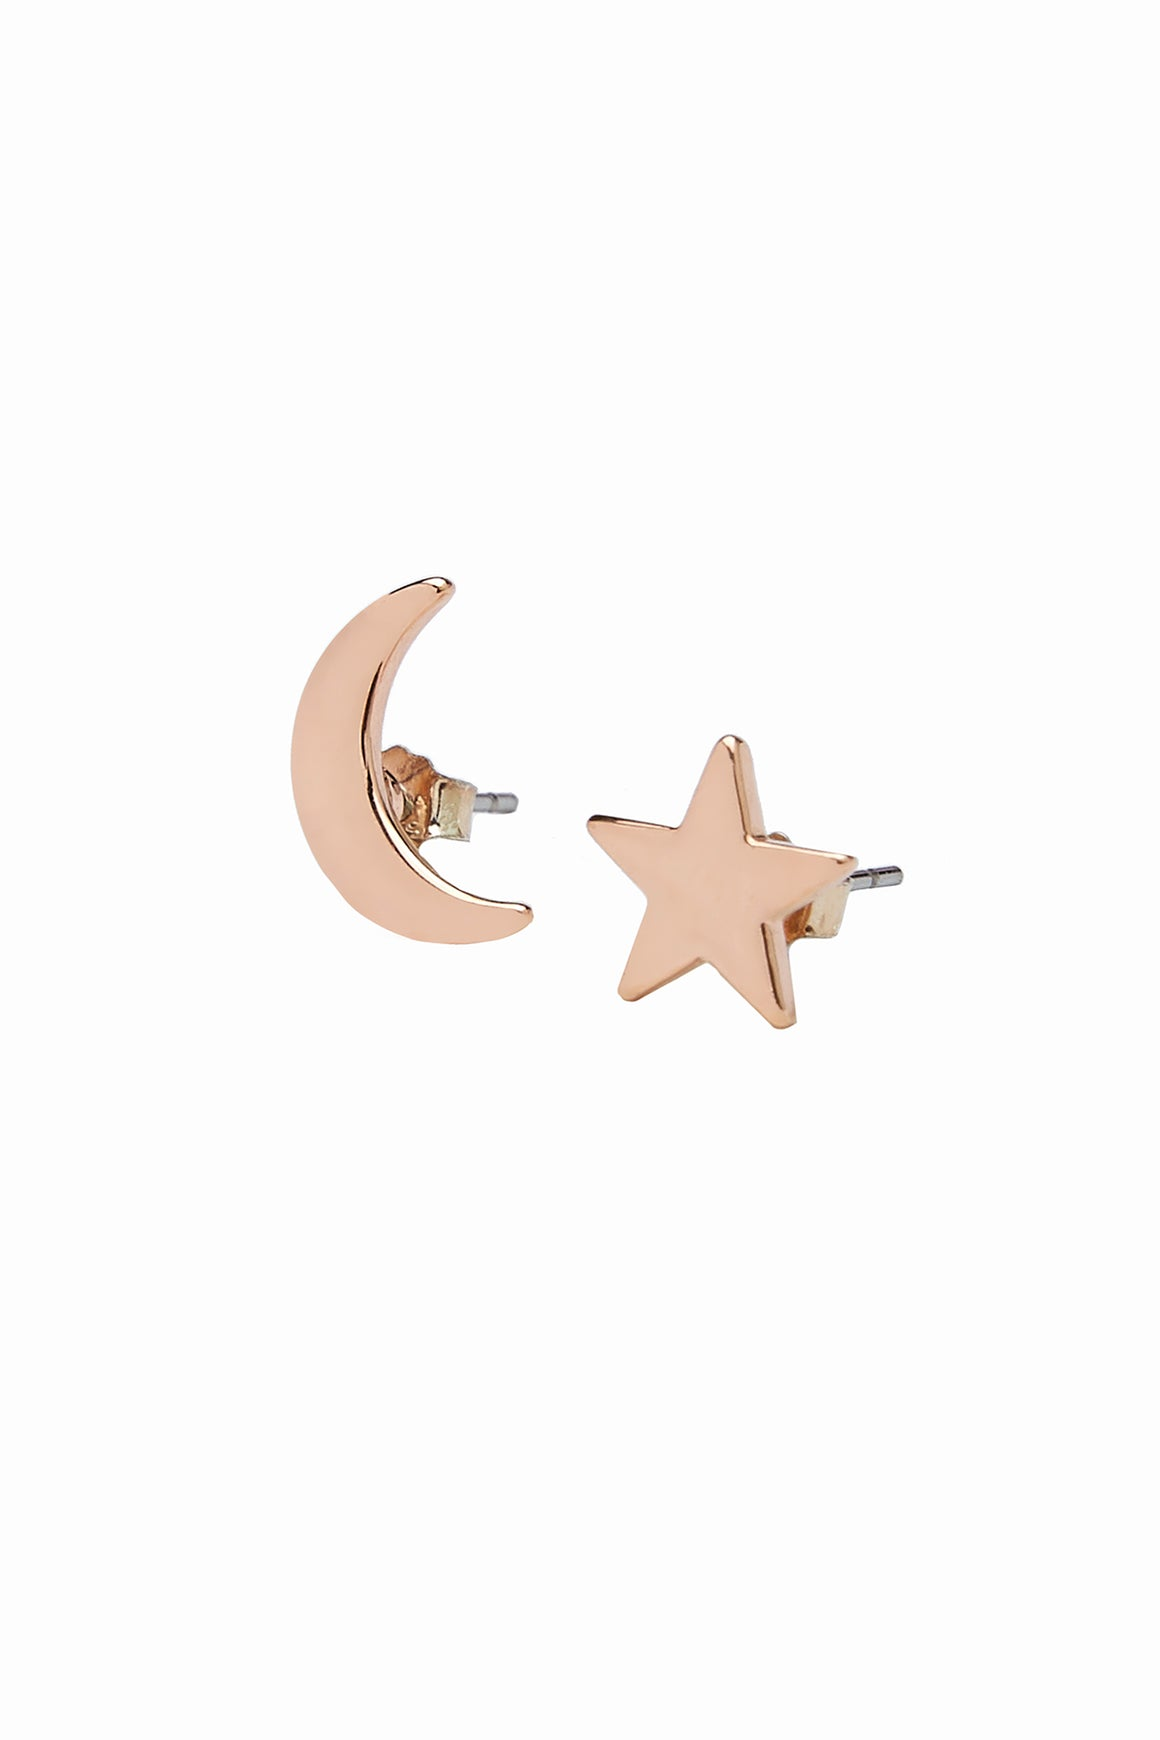 Lobo Moon and Star Basic Rose Gold